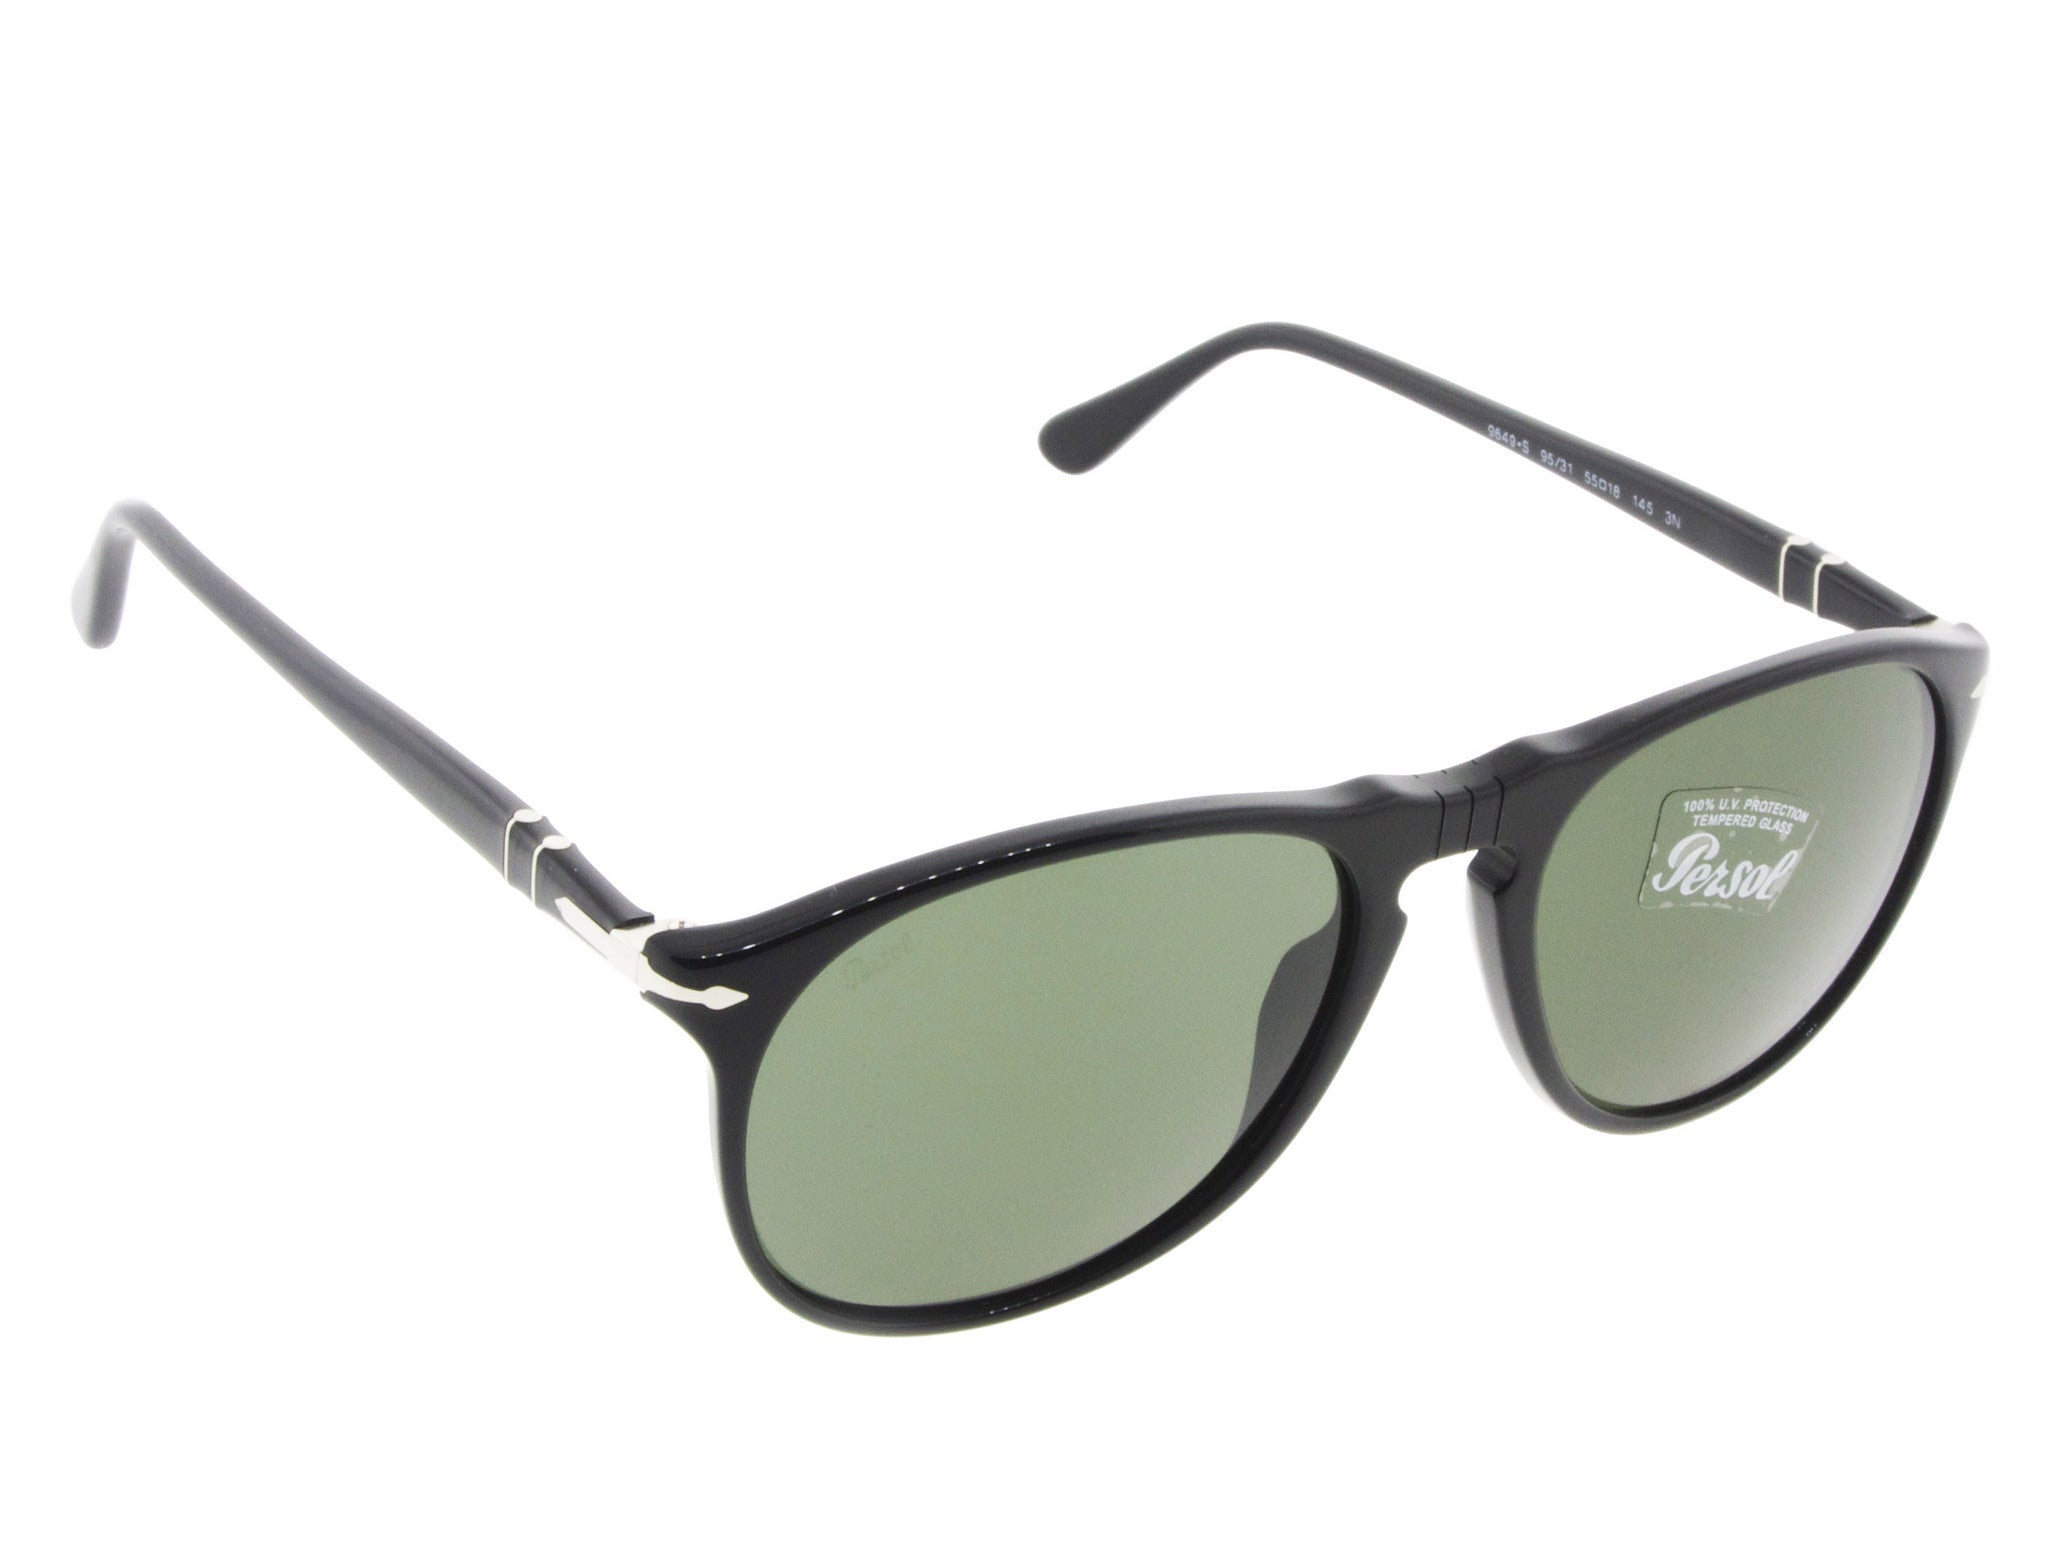 8676b9d9f1 ... Persol Sunglasses 9649S 95 31 Black with Green Lenses Size 55 ...